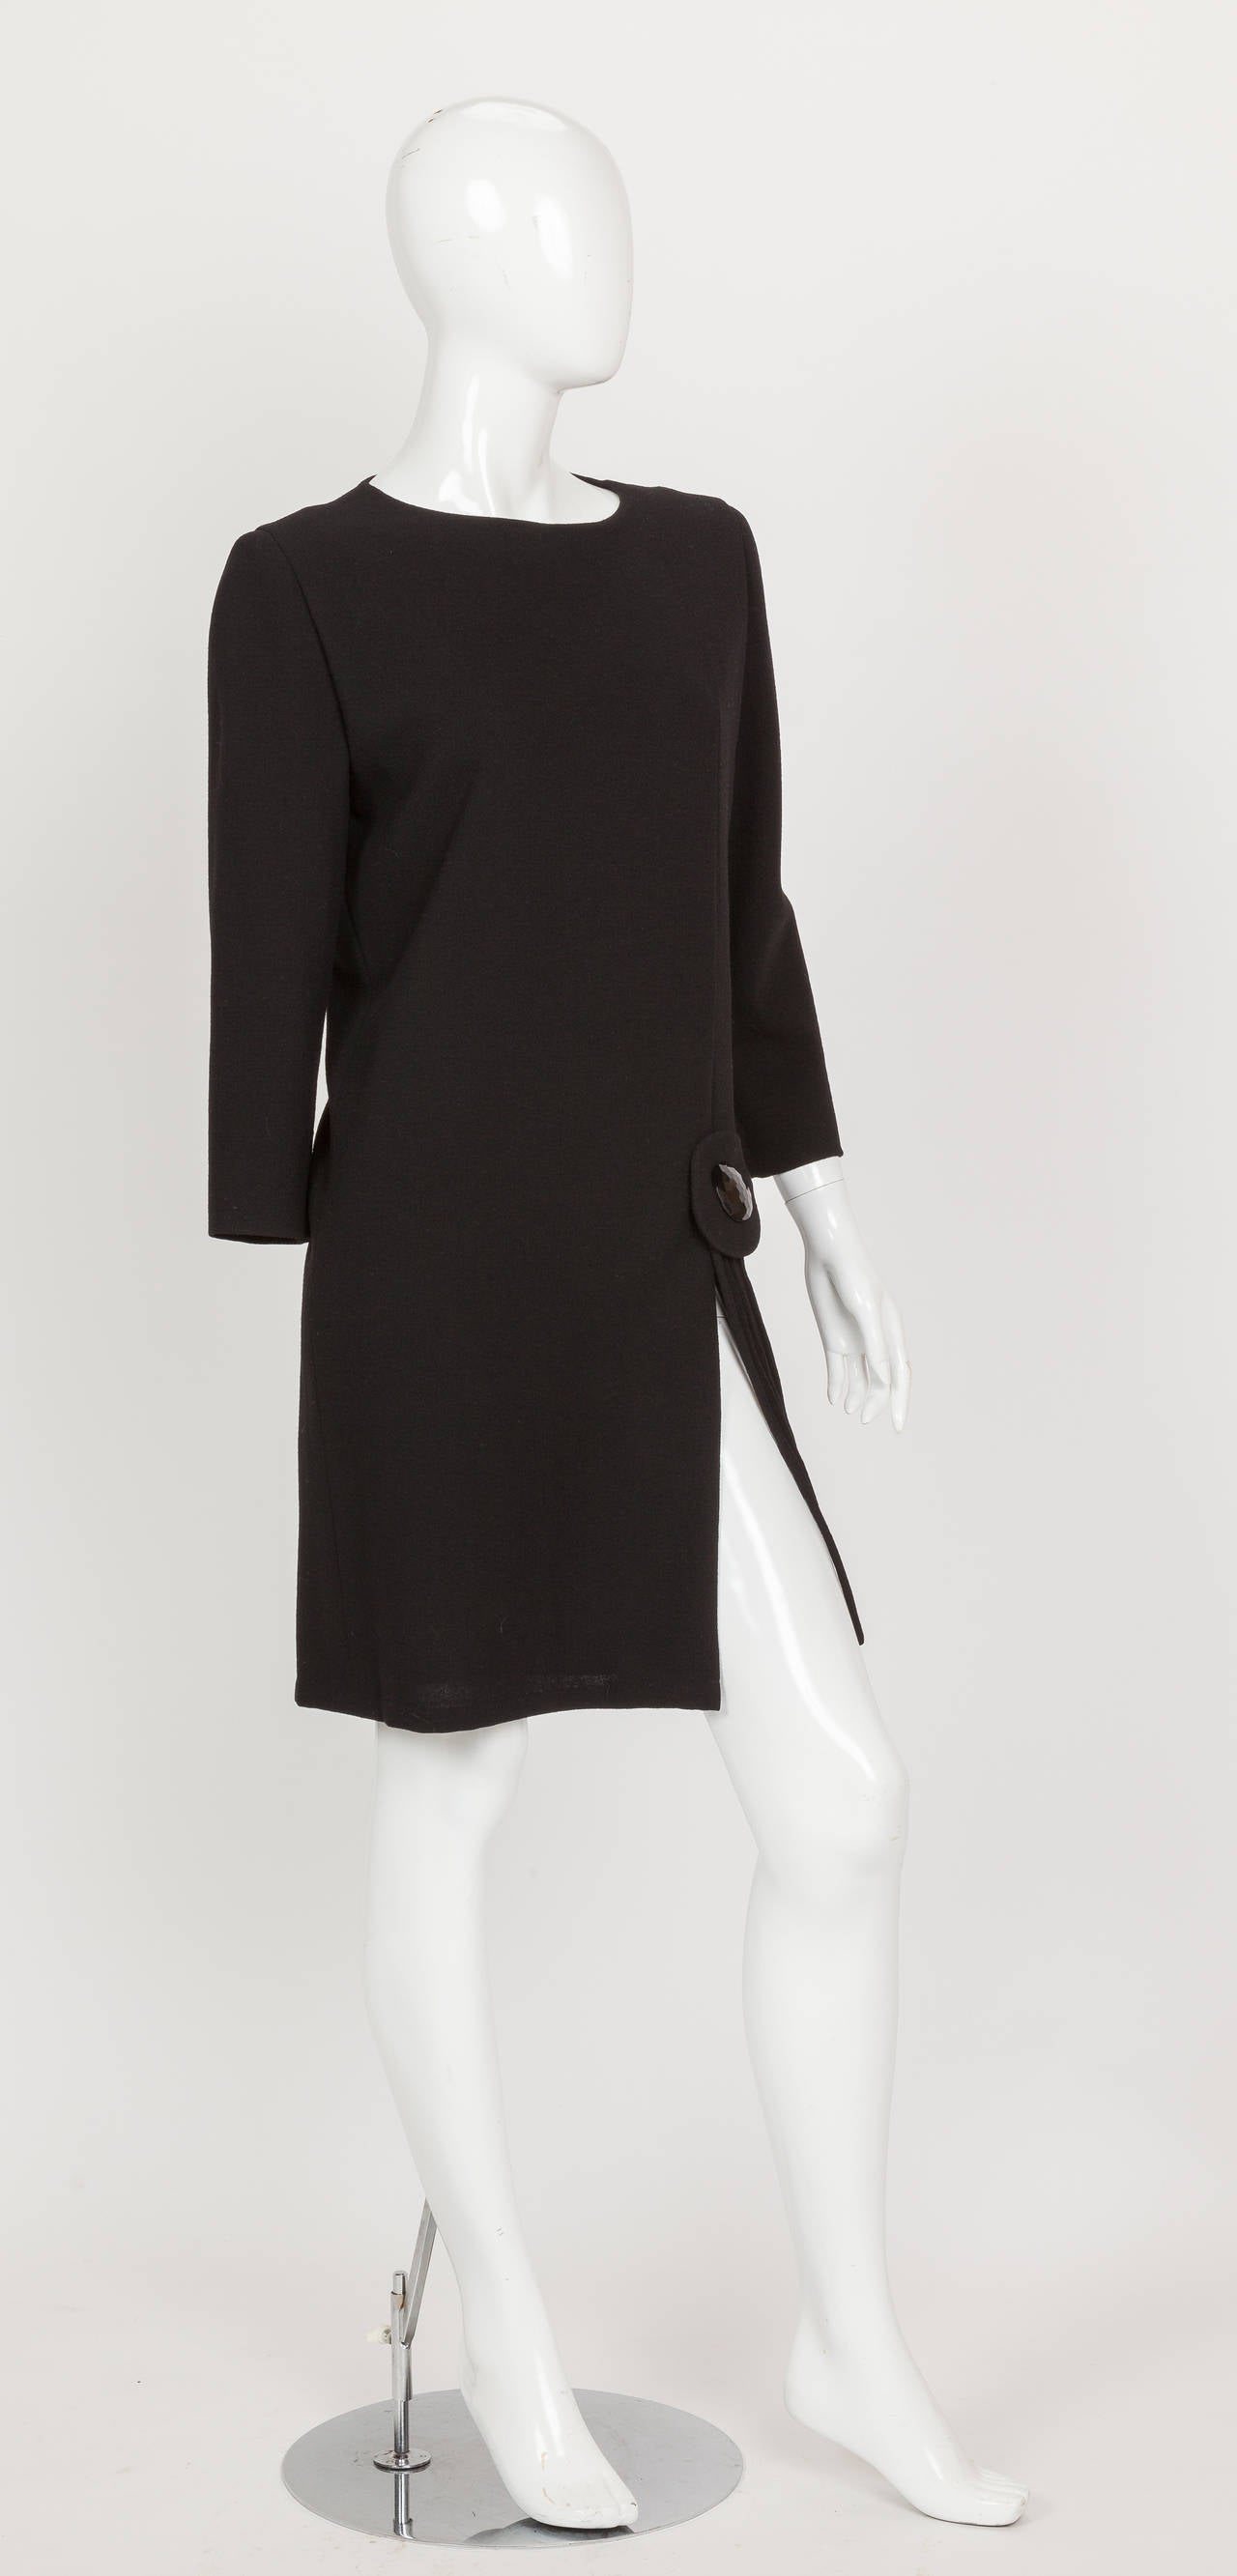 Pierre Cardin Haute Couture Black Wool Cocktail Dress w/Thigh High Slit ca. 1992 3